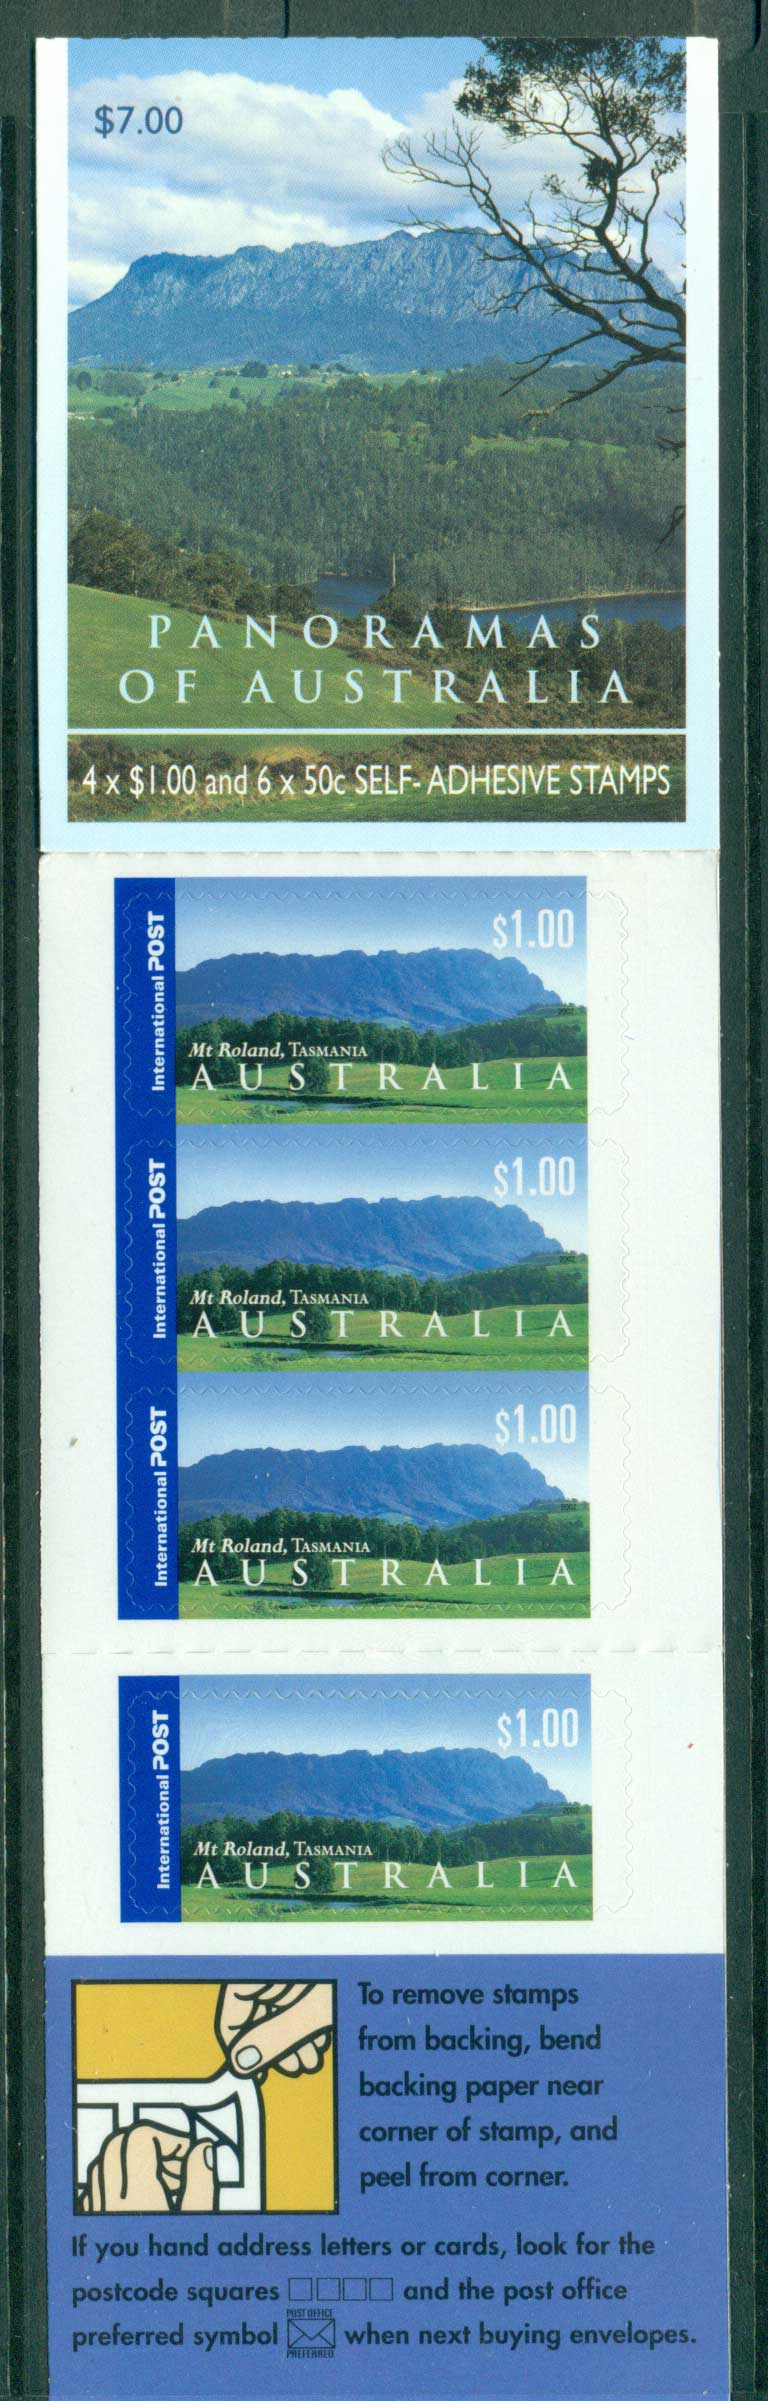 Australia 2002 $7.00 Panoramas B245 Philatelic Booklet Lot26088